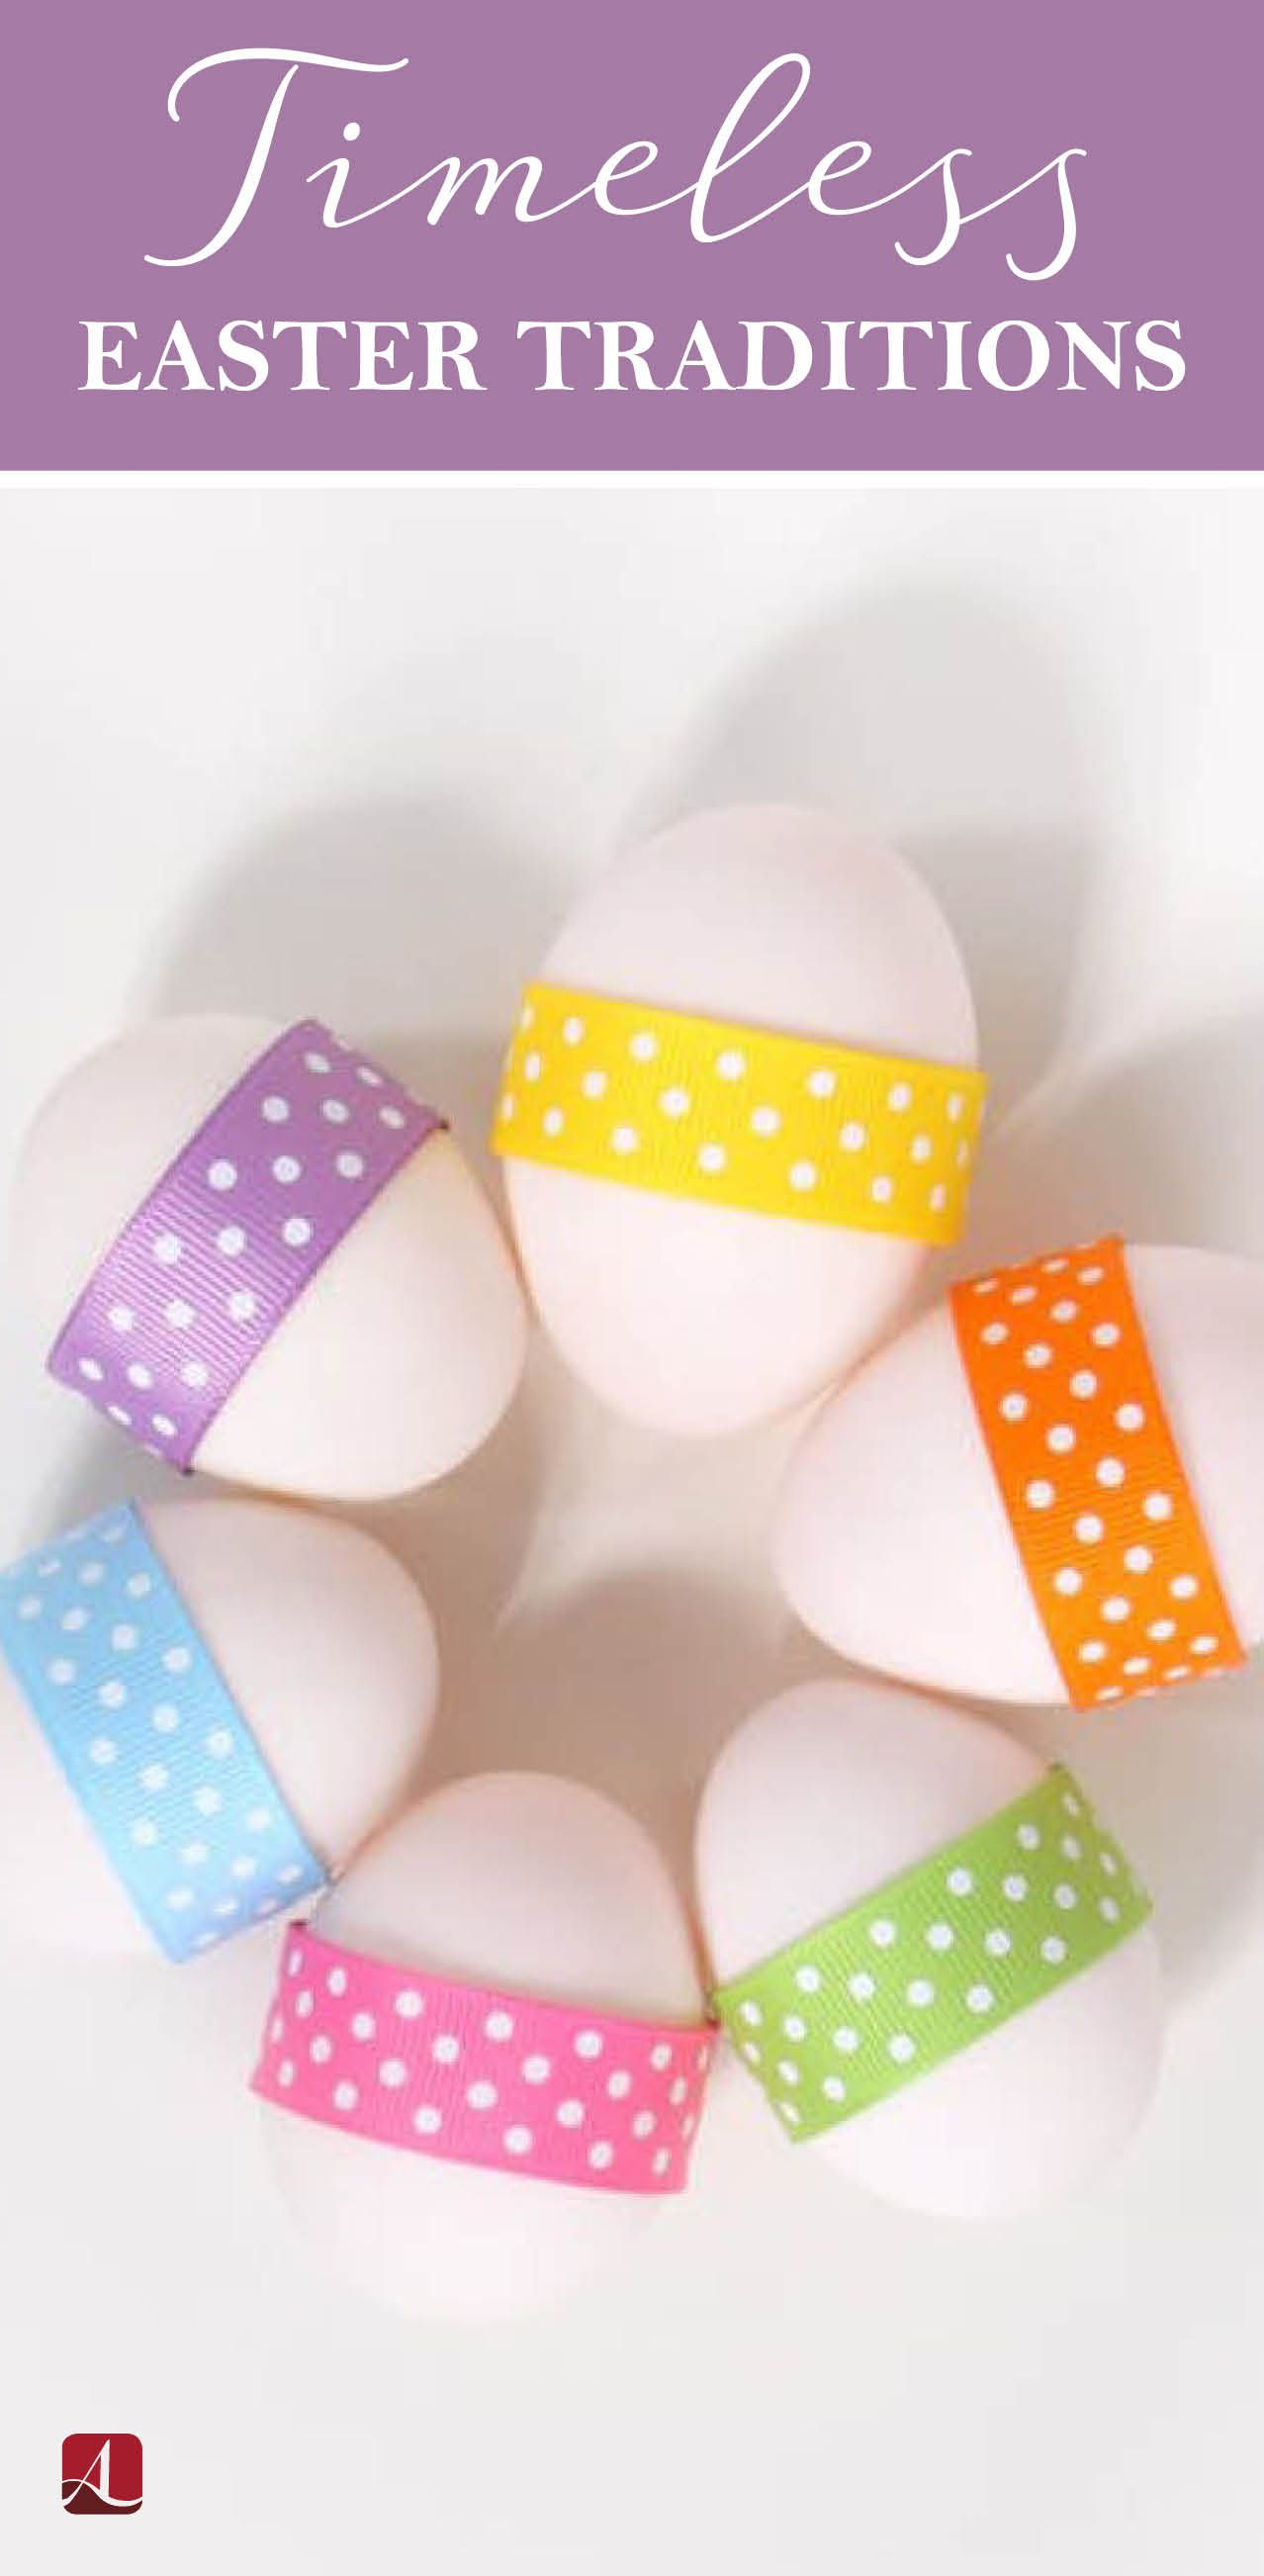 Easy Easter Traditions With Images Easter Traditions Easy